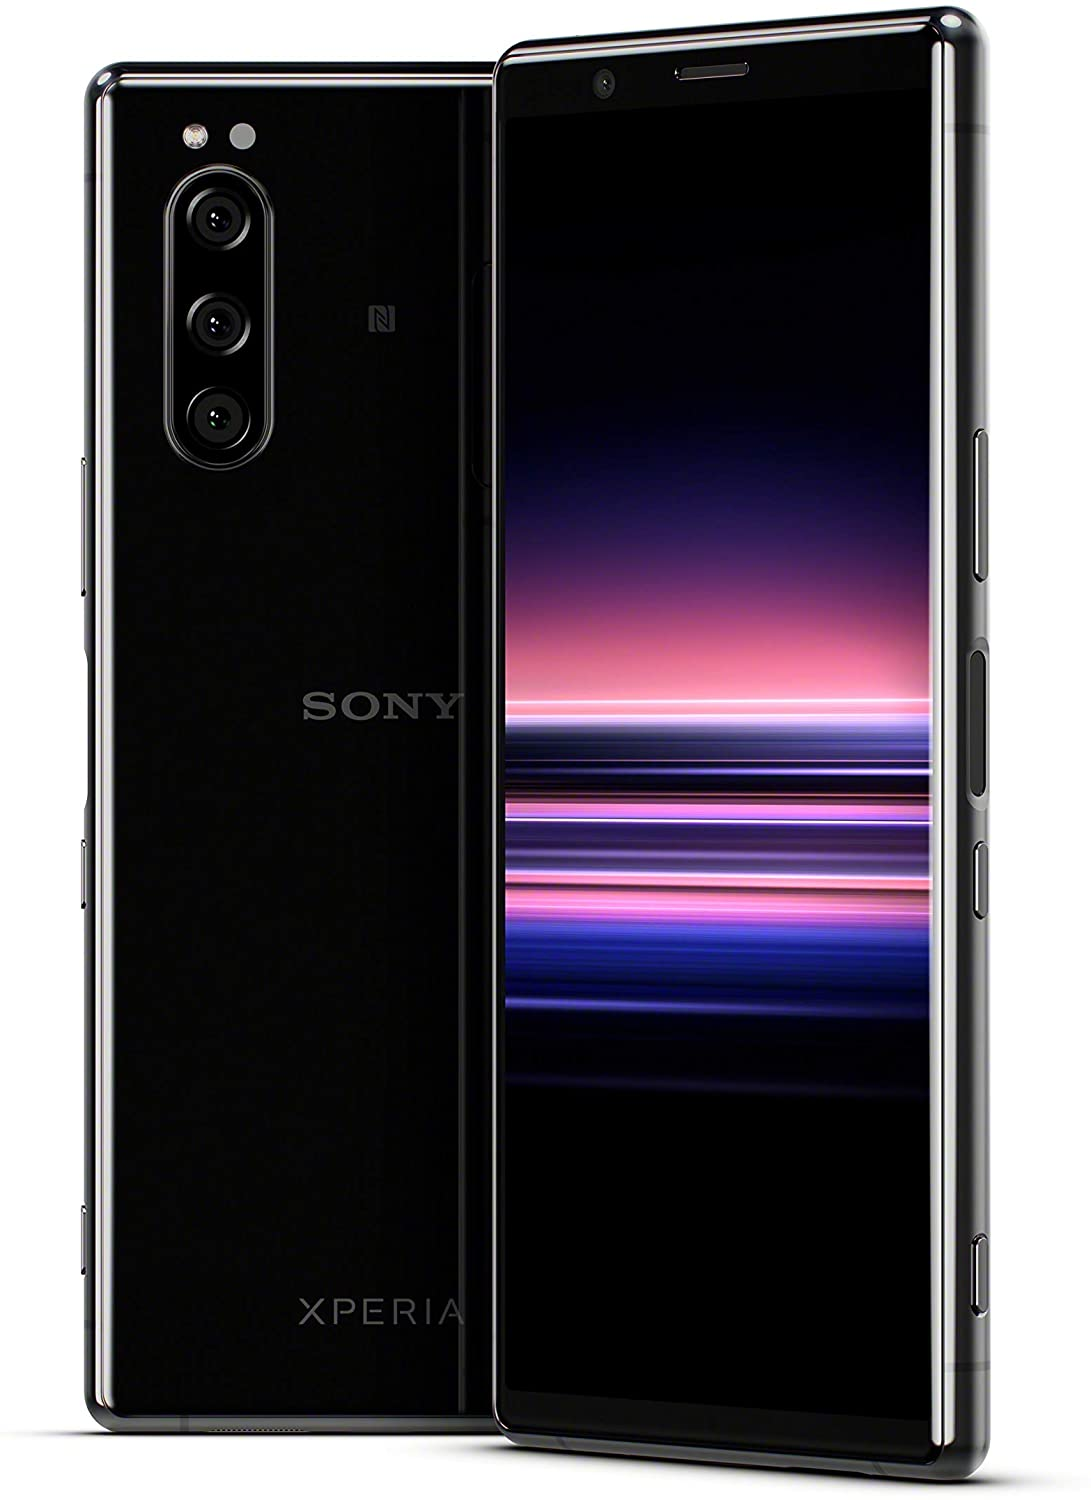 Smartphone Sony Xperia 5 - The ultimate 2020 Review - Best price in UAE - Darahim.net